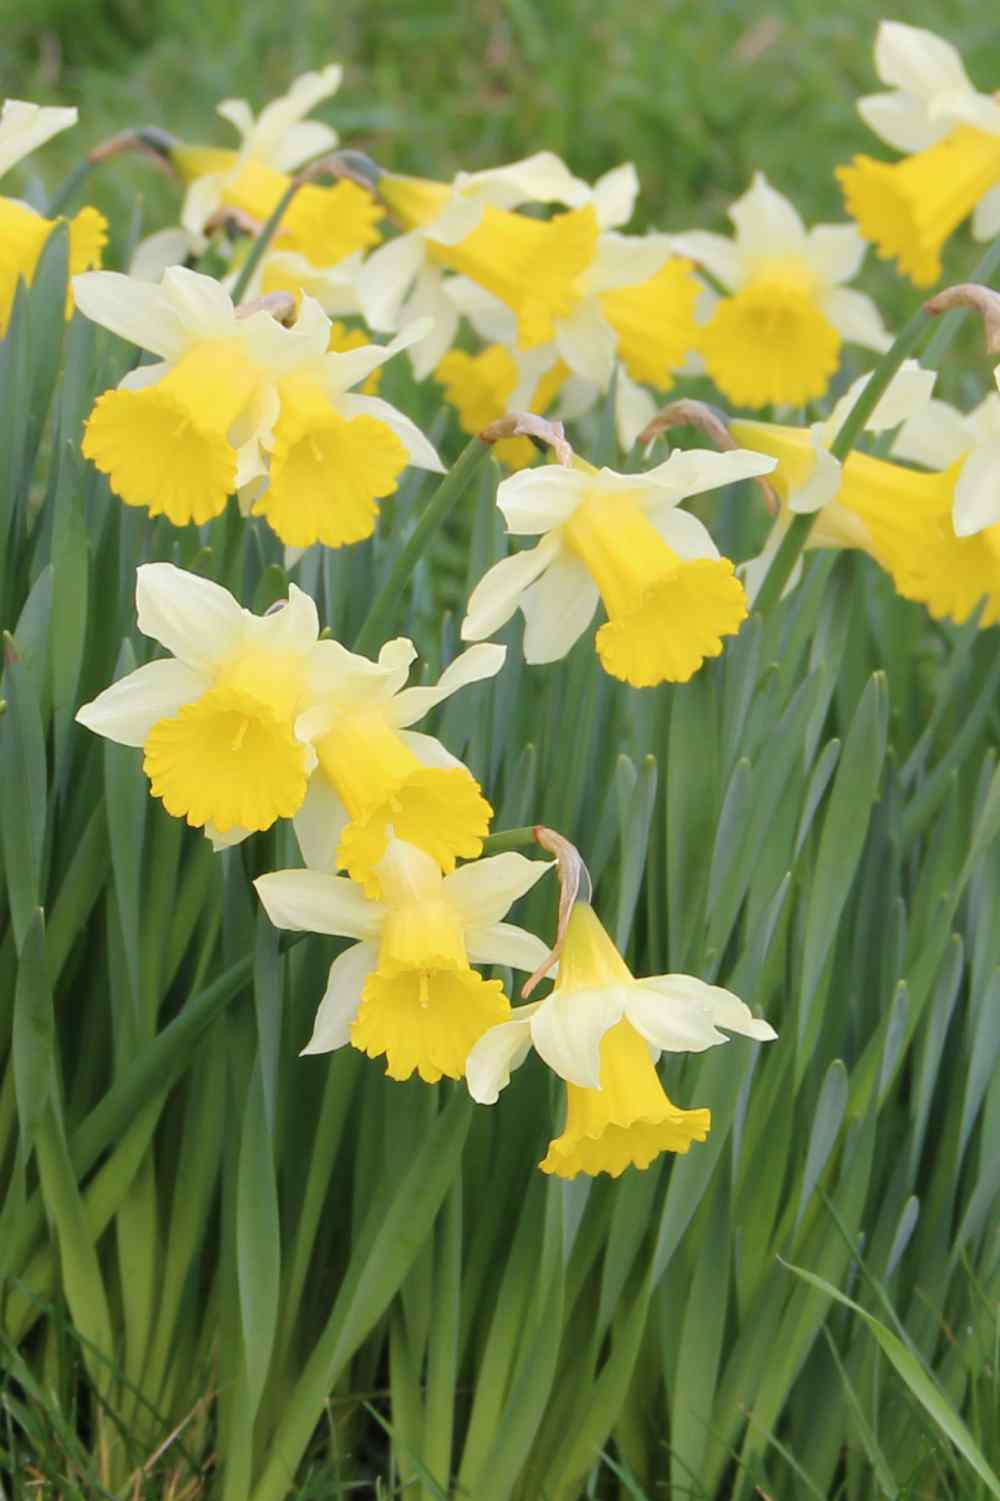 Narcissus pseudonarcissus ssp. lobularis